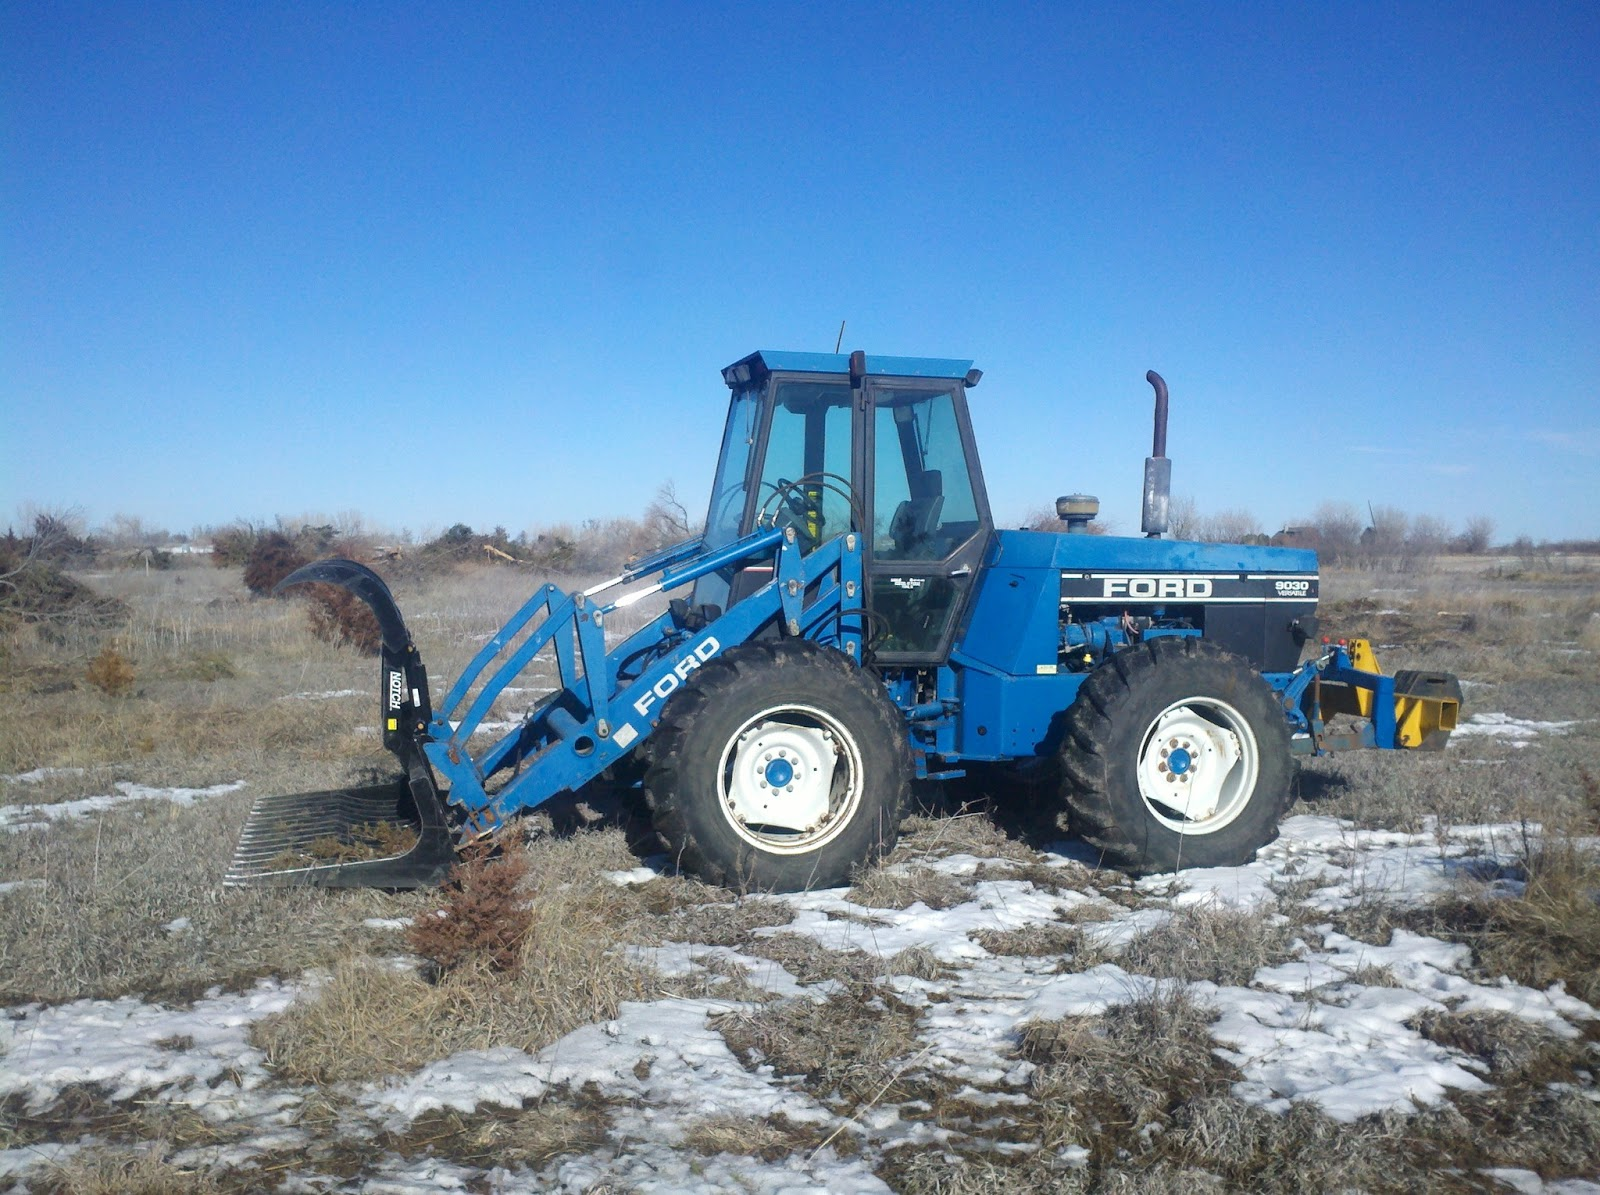 Ford Bi Directional Tractor : Tractor seat confessions january